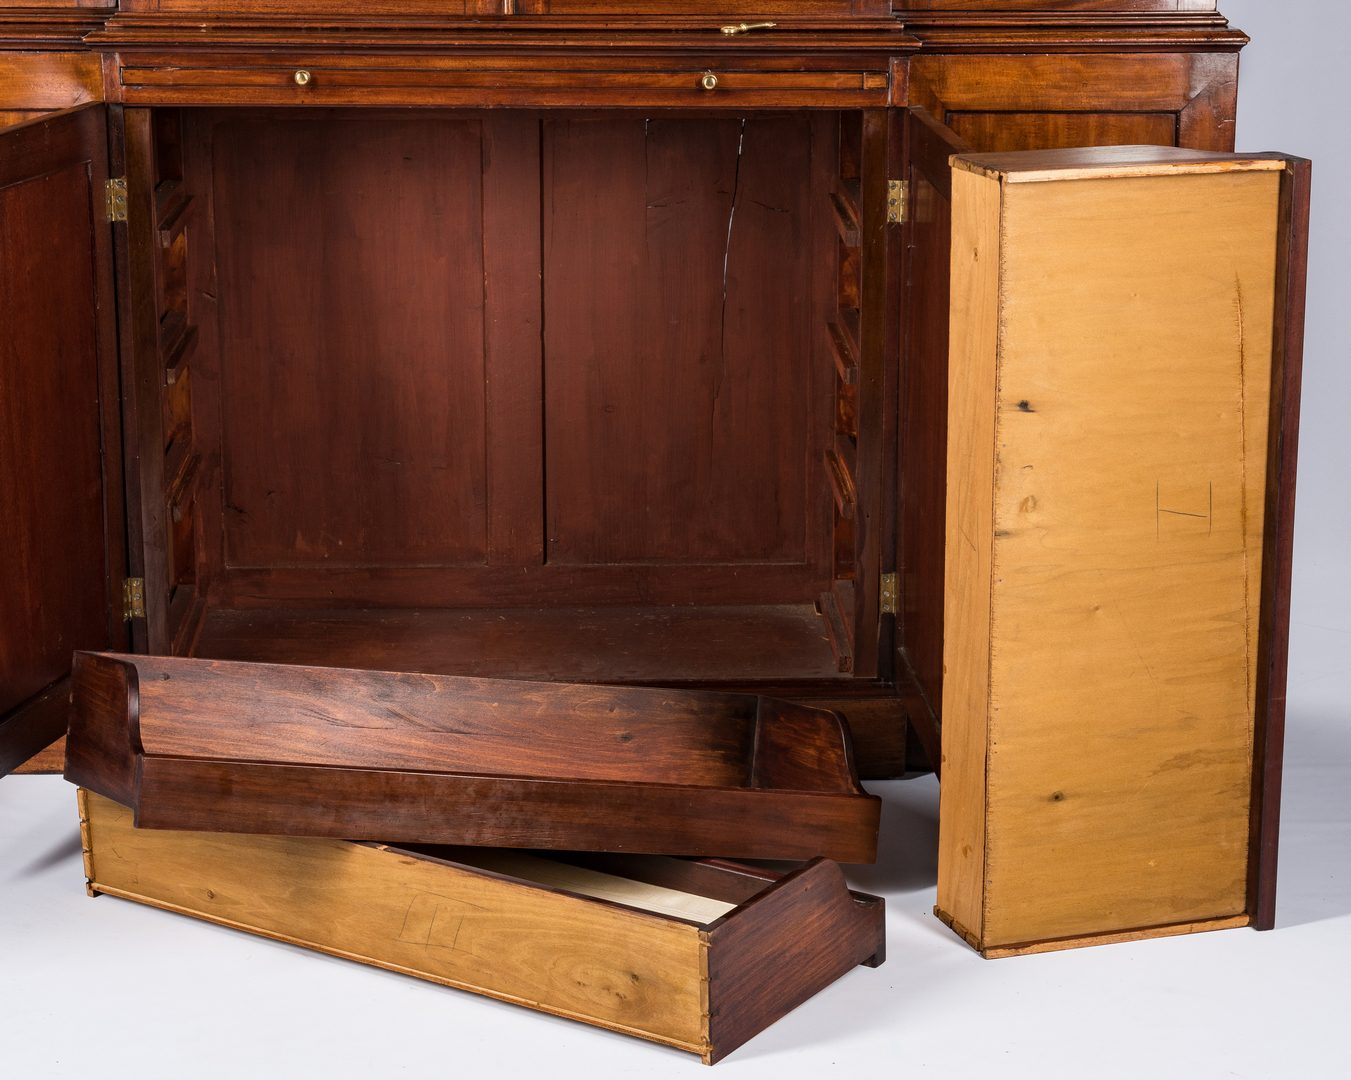 Lot 435: Diminutive Regency Breakfront Bookcase